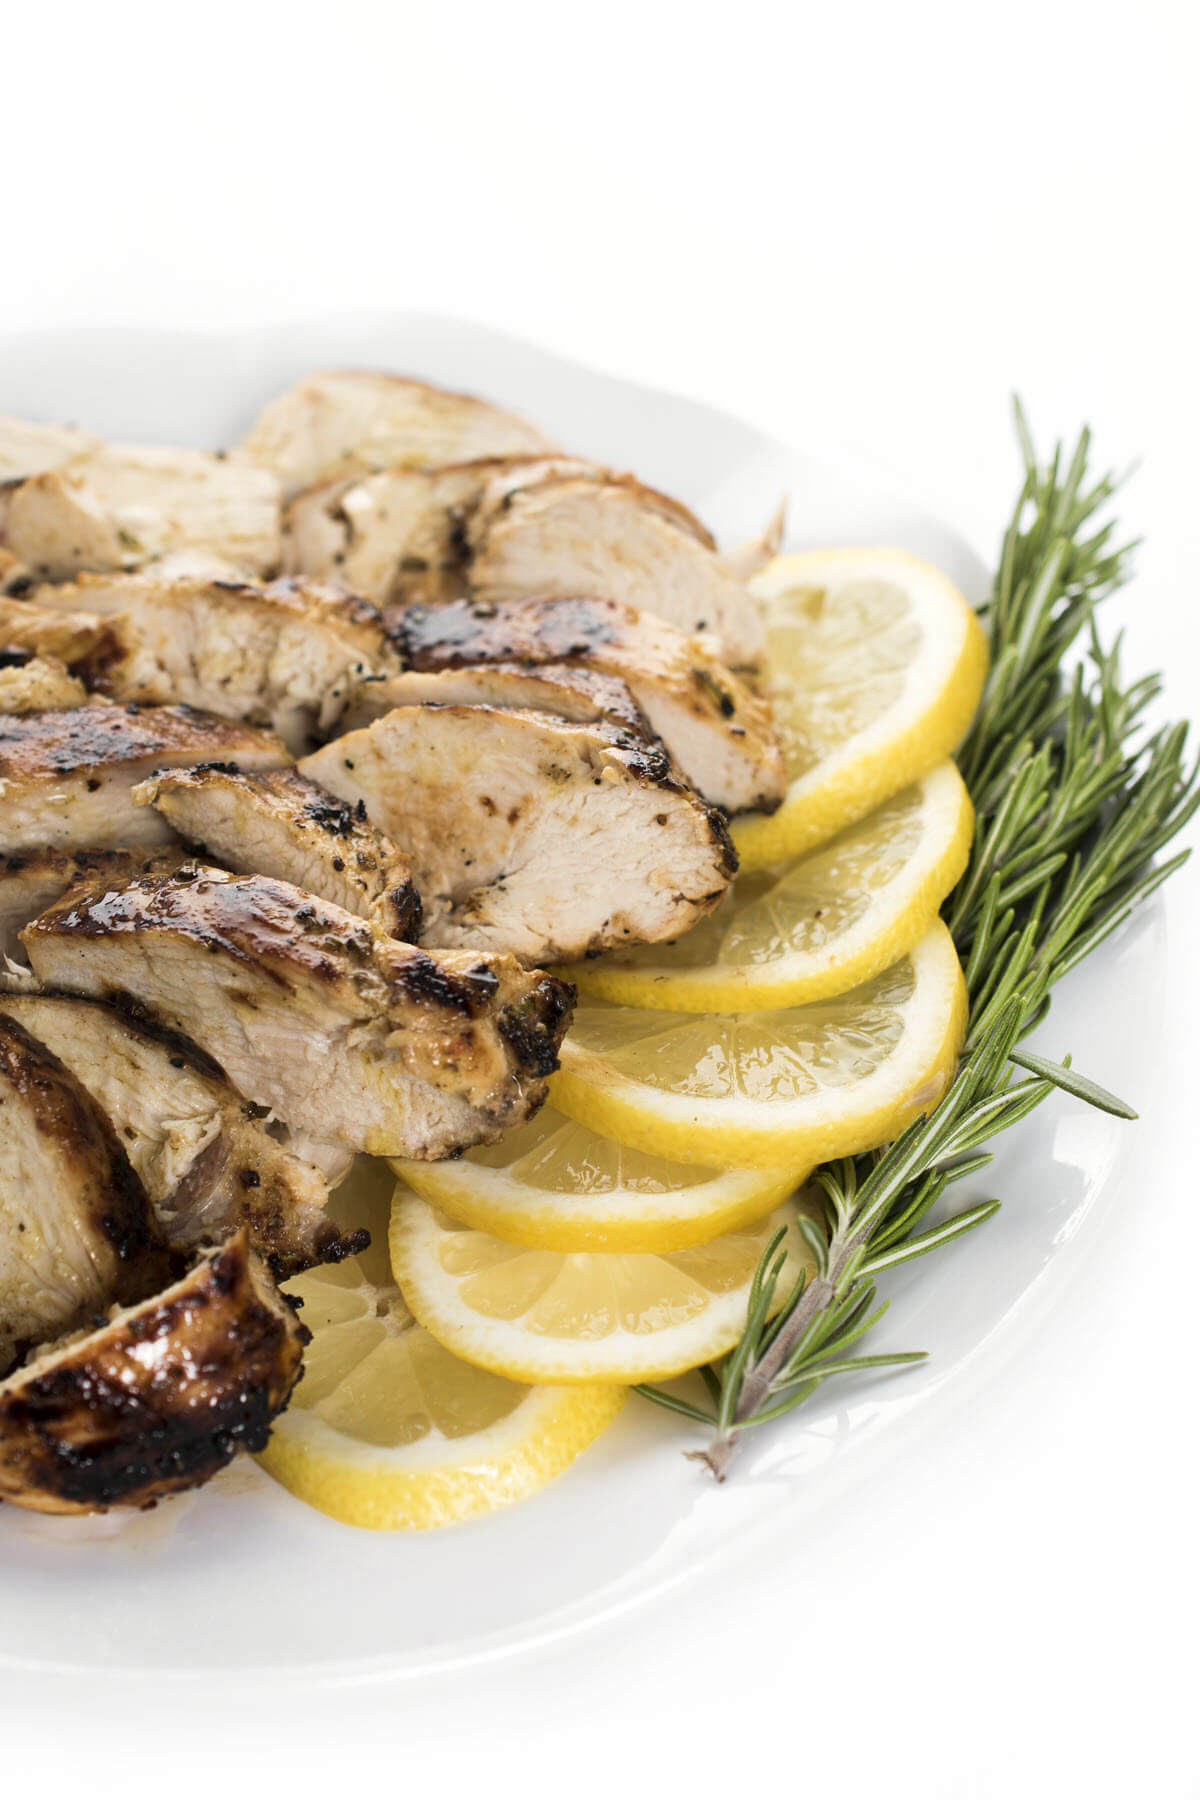 rosemary grilled chicken breasts on a plate